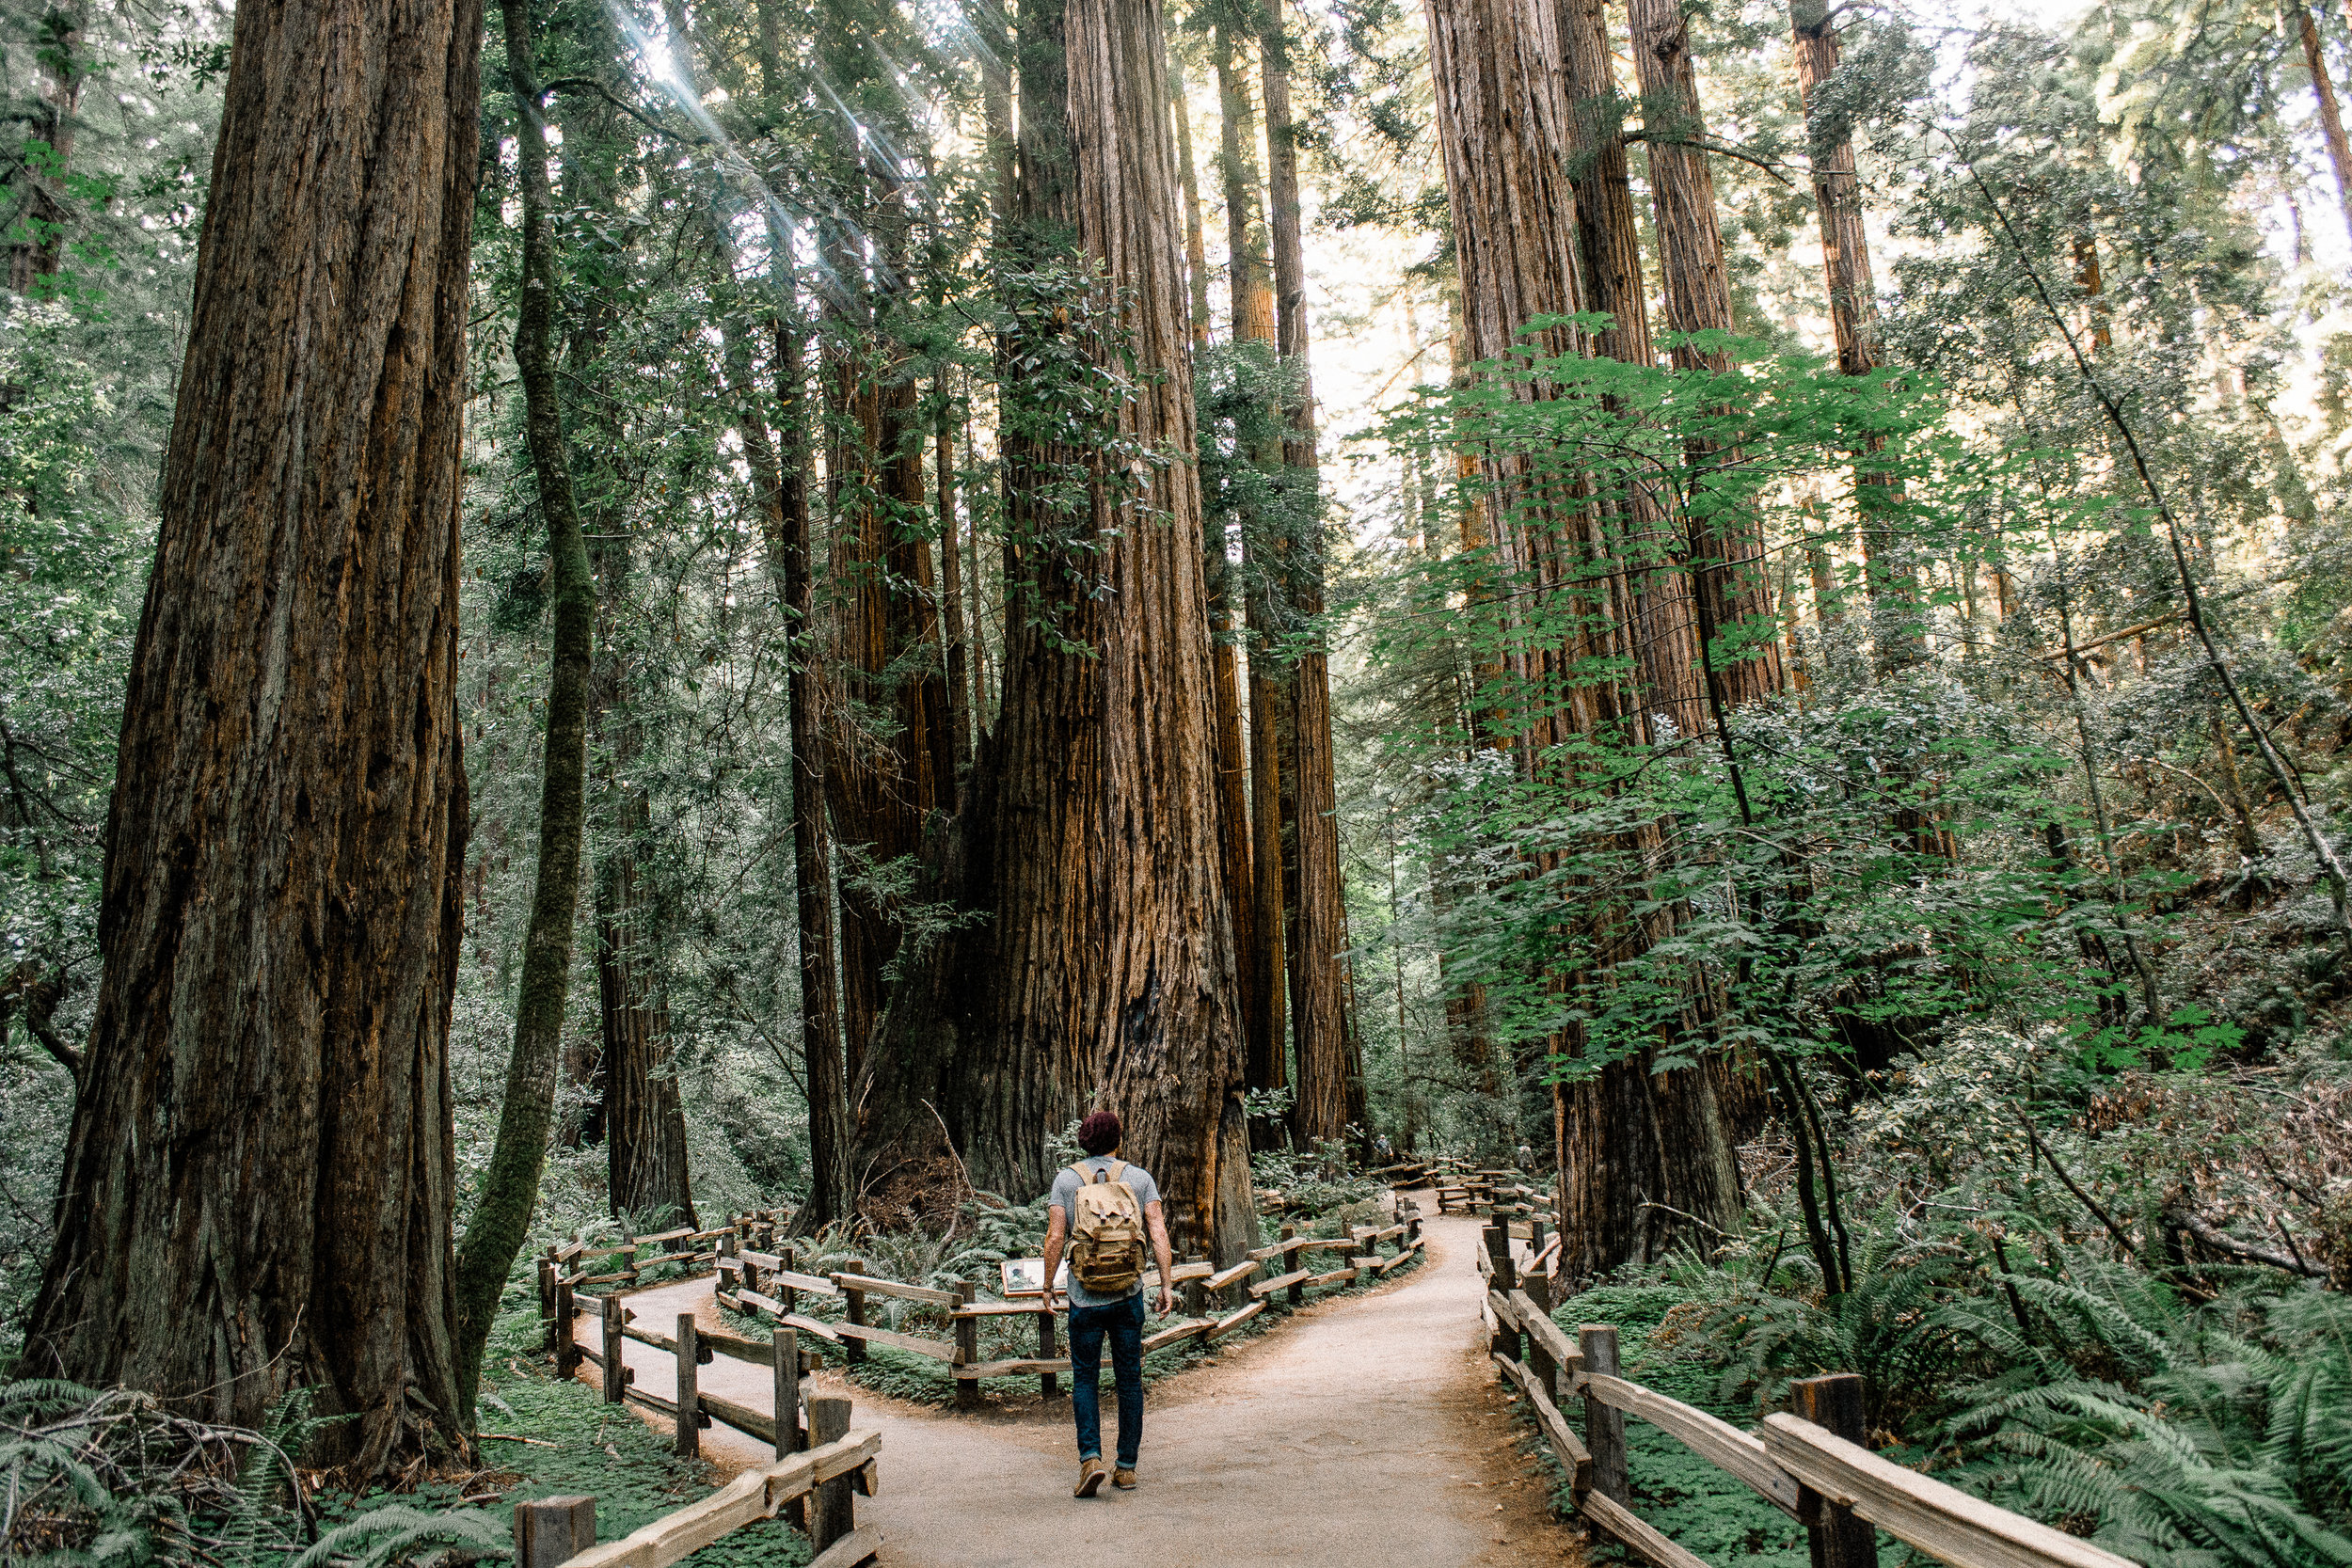 Muir Woods Tours - If you want to leave the planning to the experts, hop on one of these tours to easily see Muir Woods in a day.